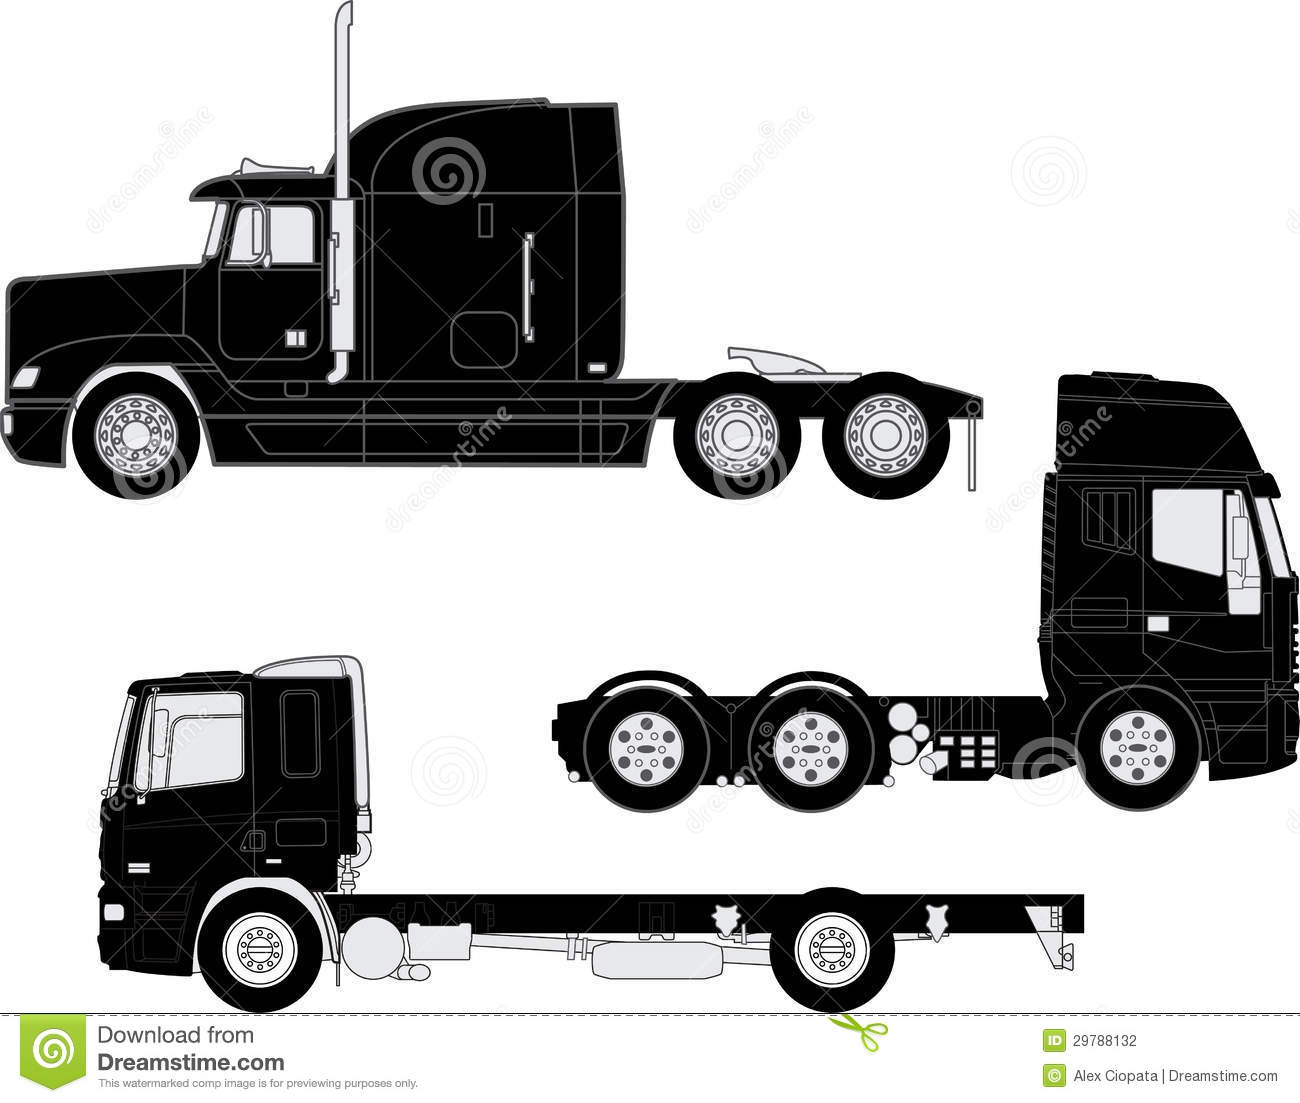 Tow Truck Silhouette Bing images